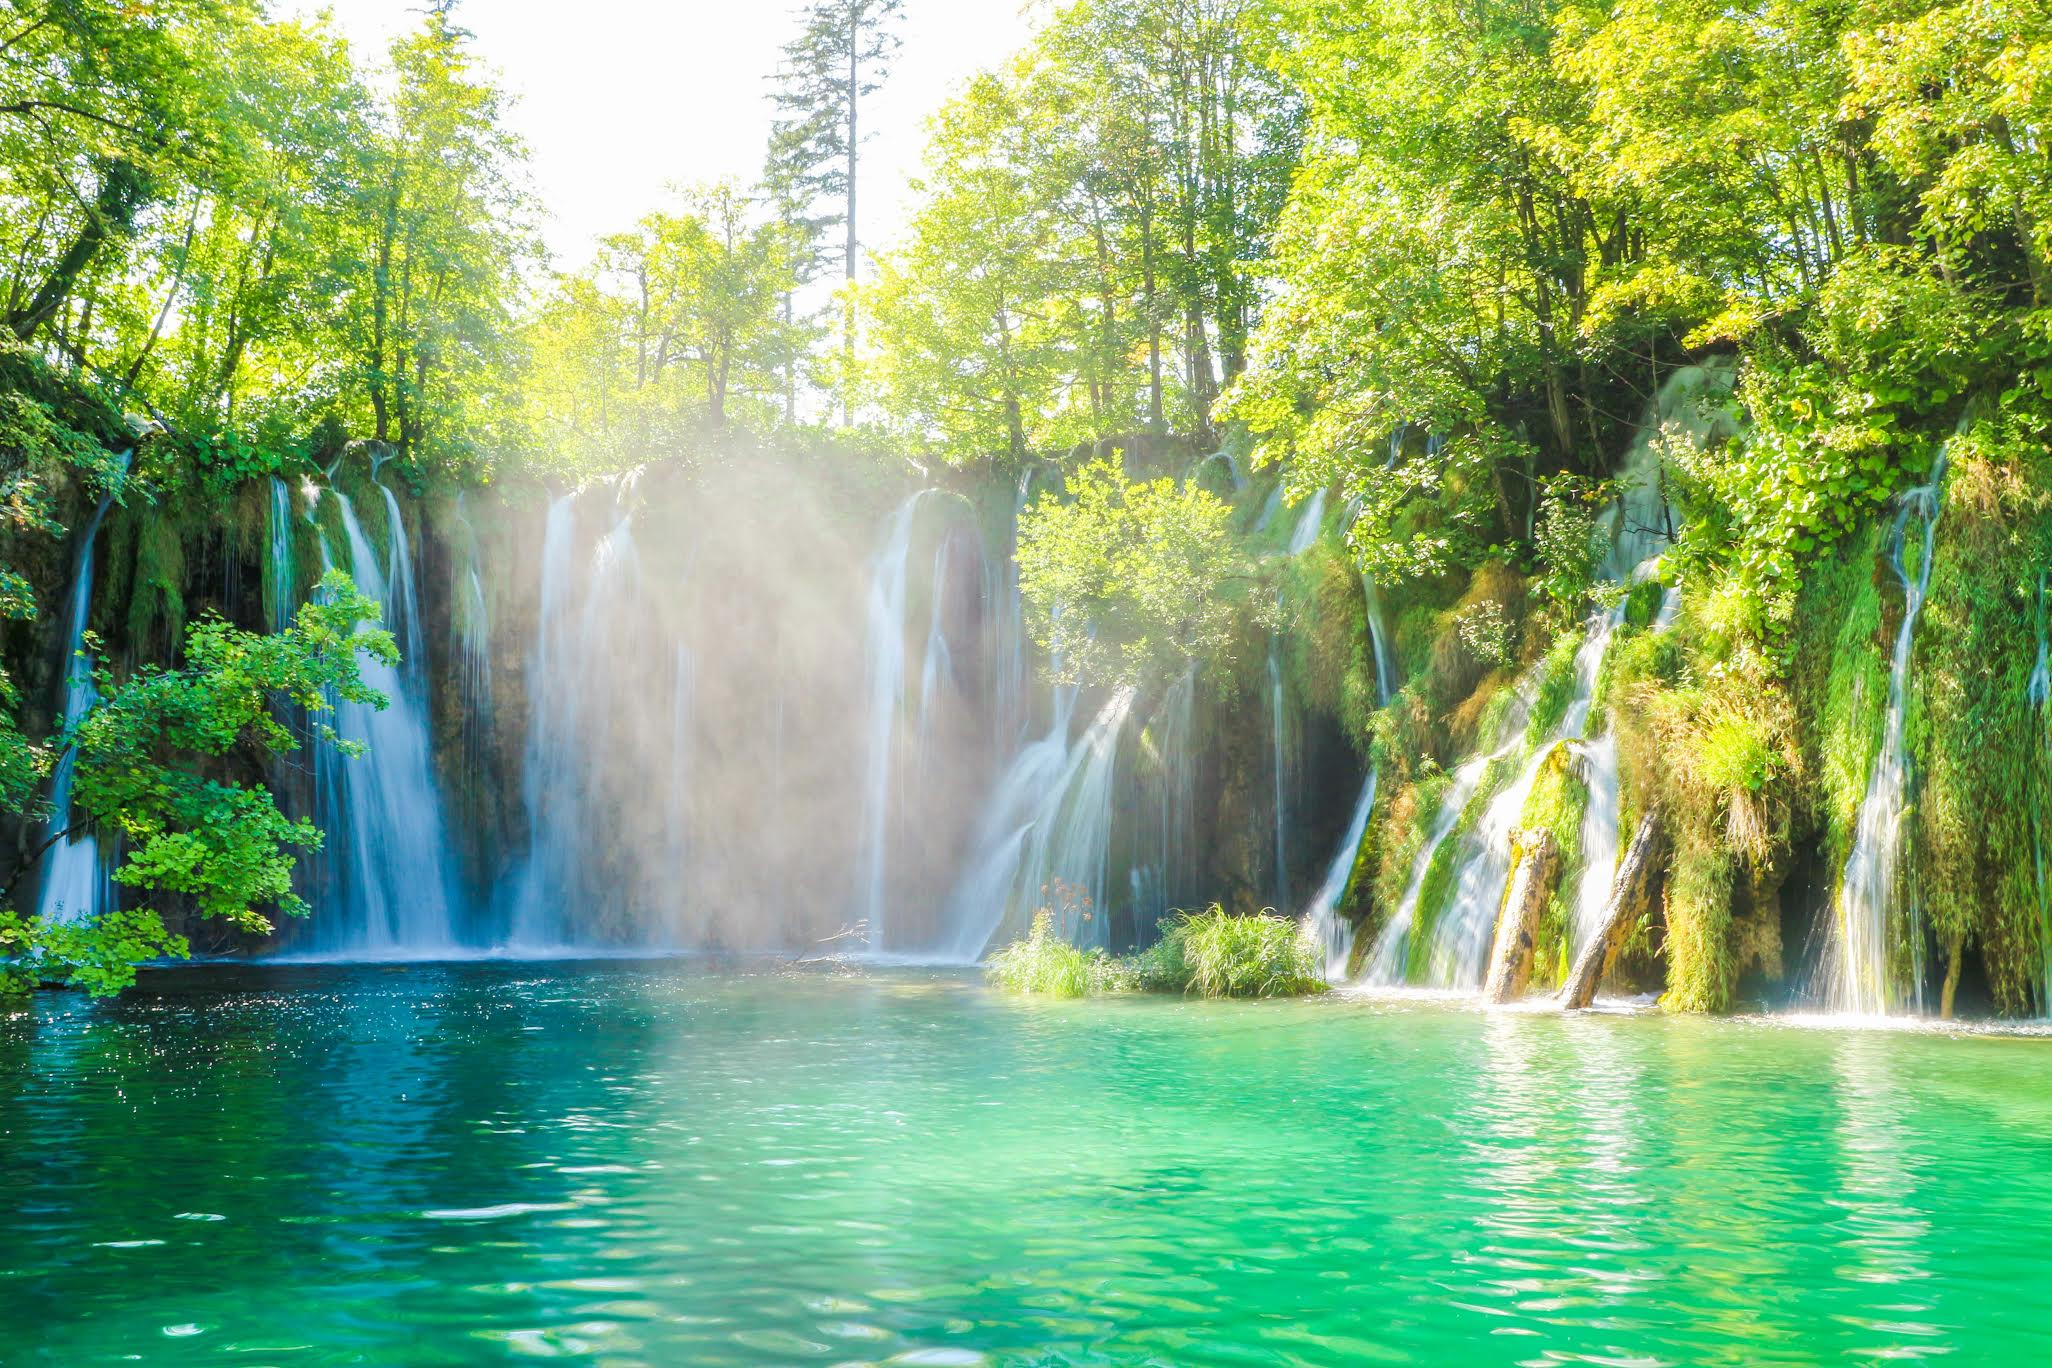 Plitvice Lakes National Park, Croatia is one of the must-see UNESCO World Heritage Sites in Europe. Discover the best UNESCO sites in Europe recommended by travel bloggers from this article. #UNESCO #unescosites #unescositeseurope #europeunesco